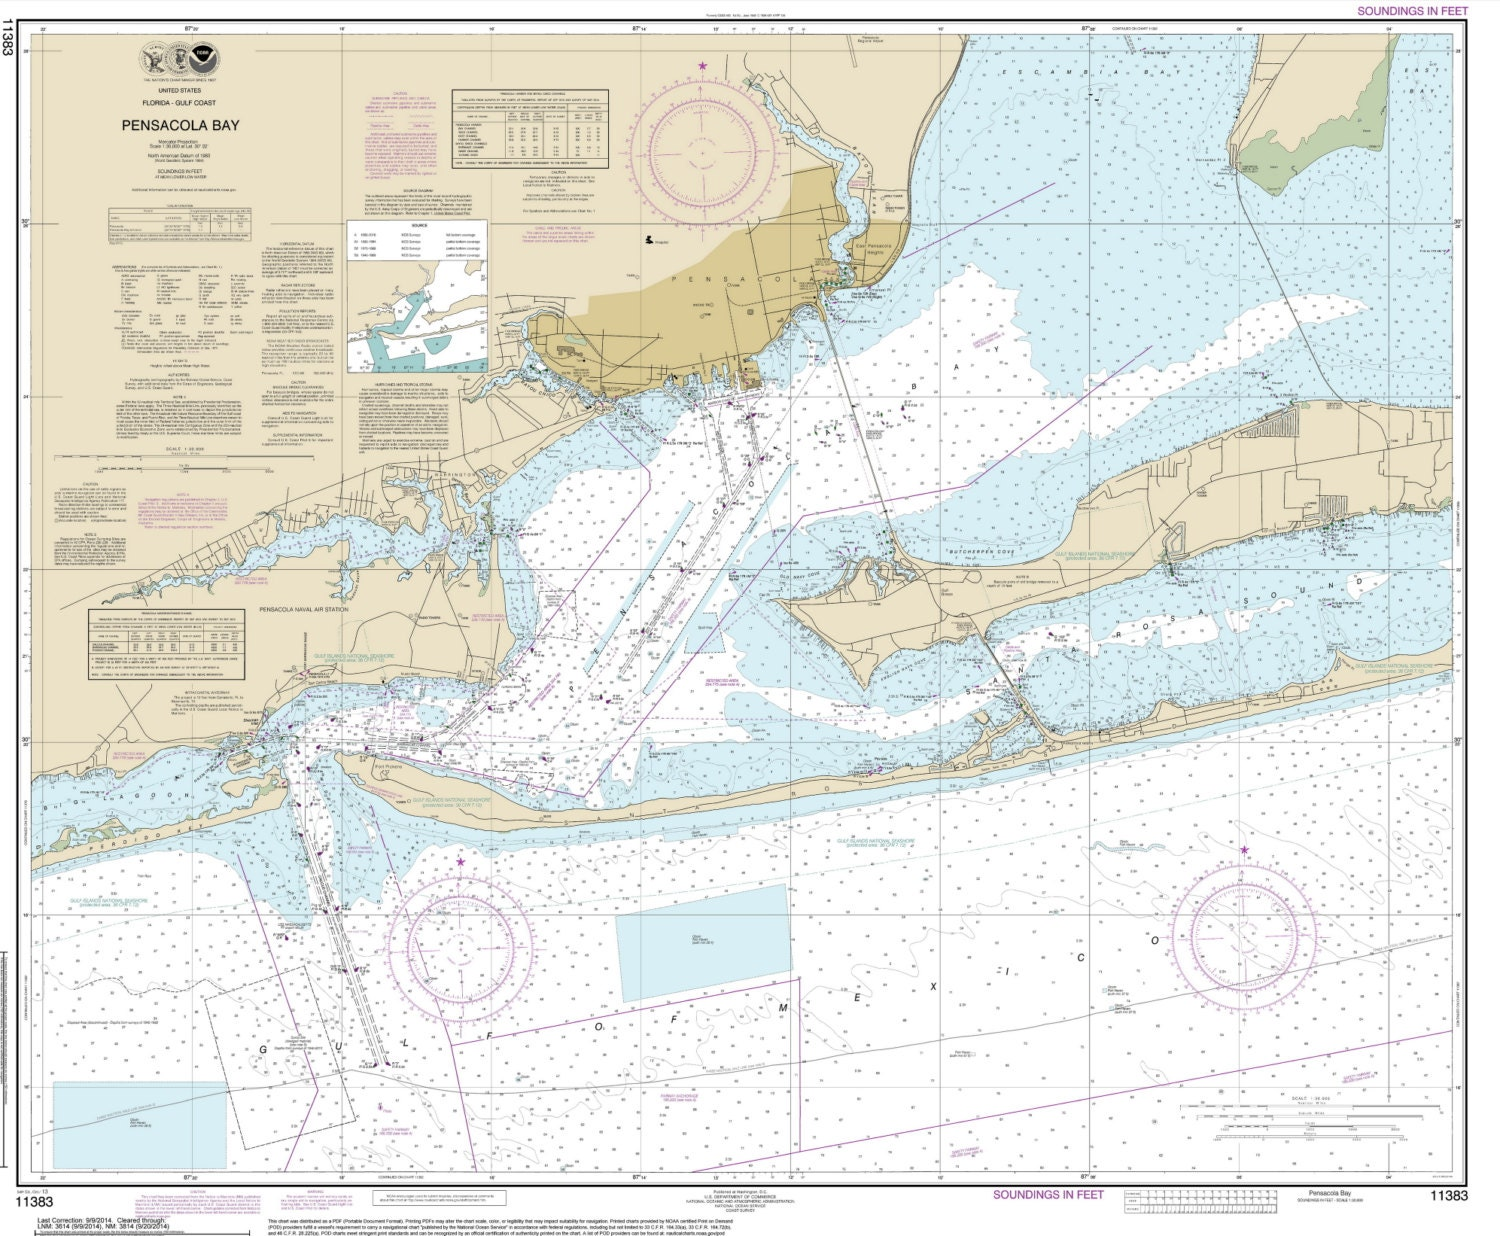 Pensacola bay entrance 2014 map old nautical chart florida for Pensacola bay fishing